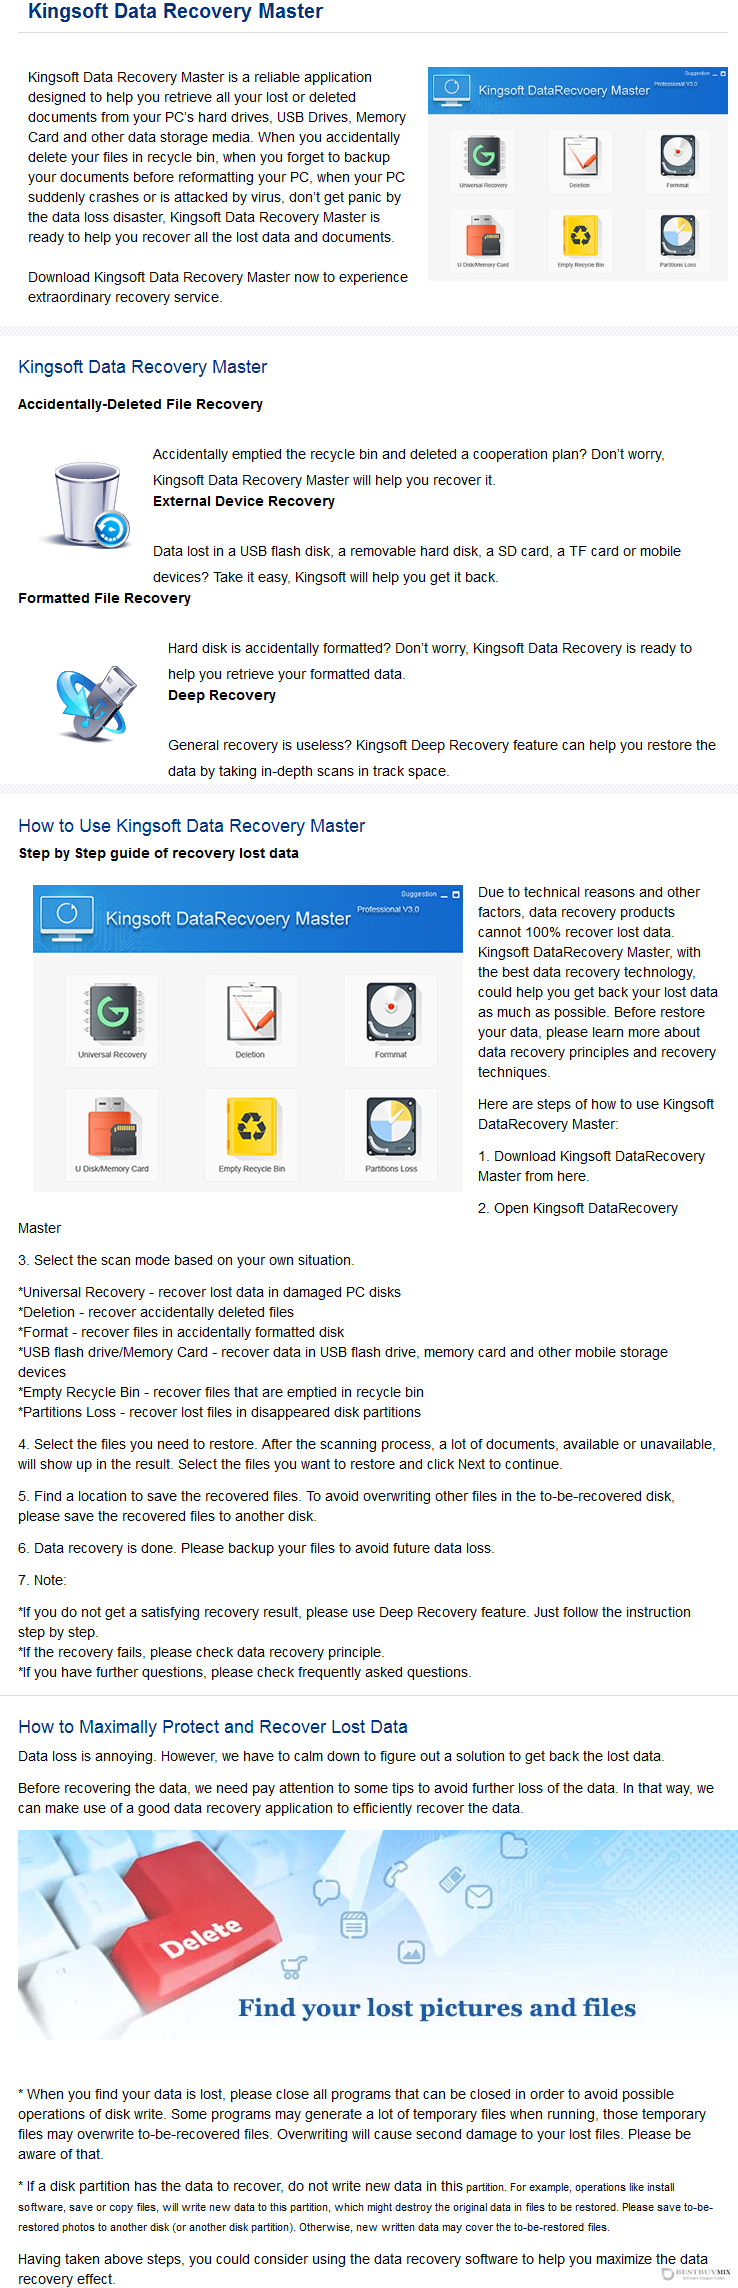 Kingsoft Data Recovery Discount Coupon Code